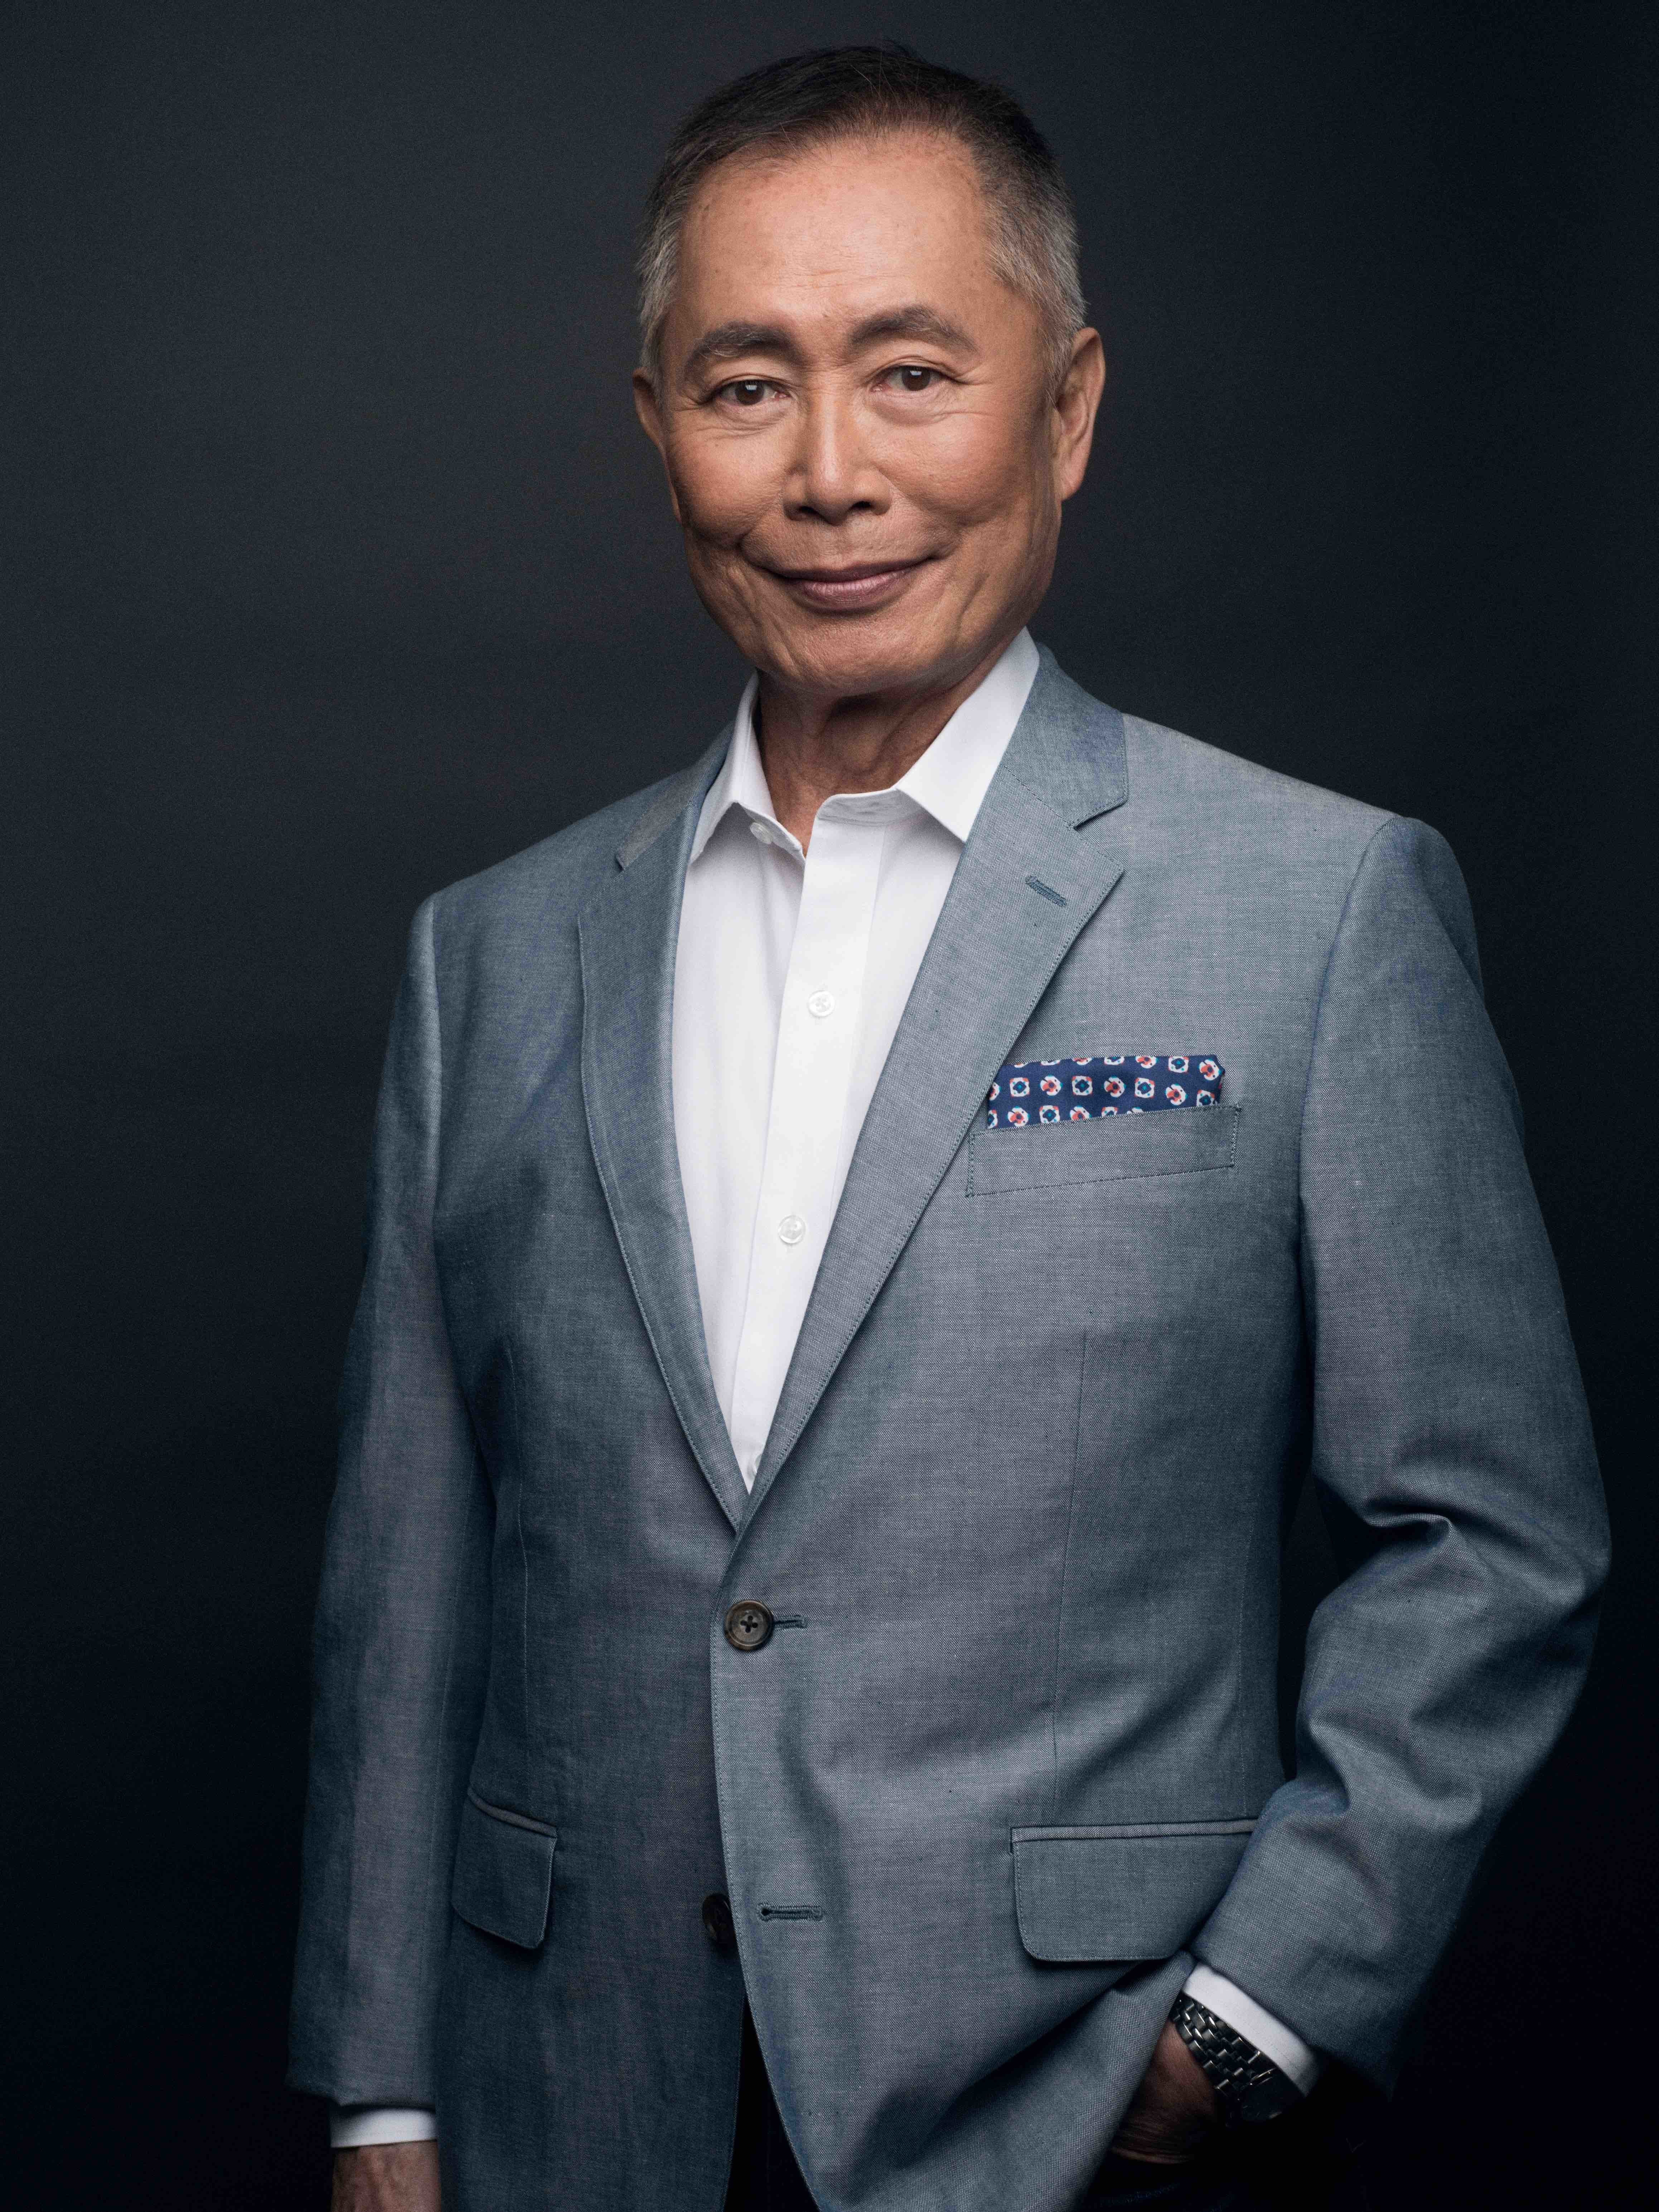 George Takei in a suit